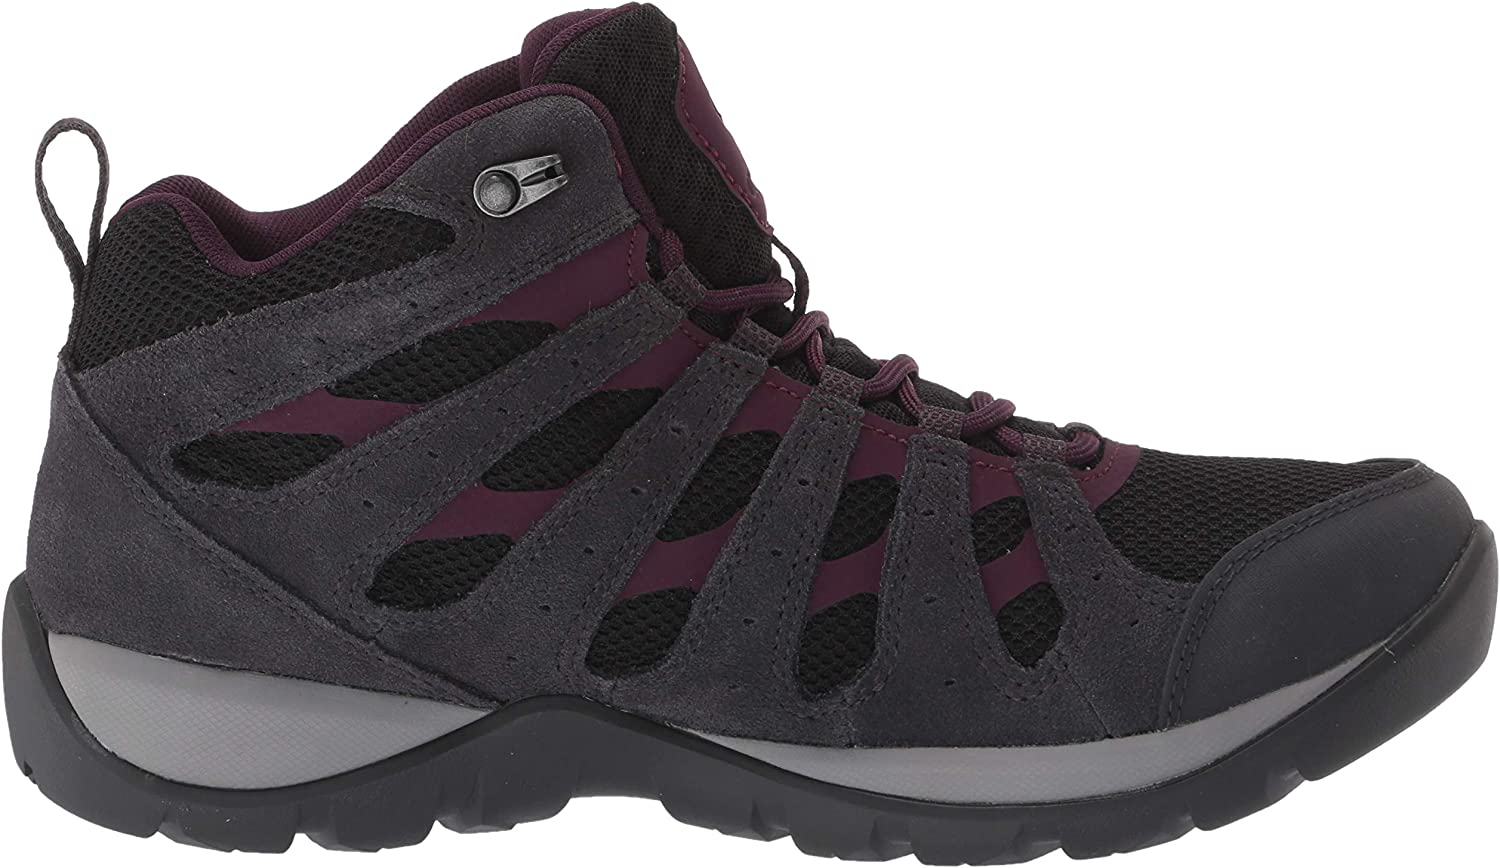 Breathable Leather Columbia Women/'s Redmond V2 Waterproof Mid Boot Hiking